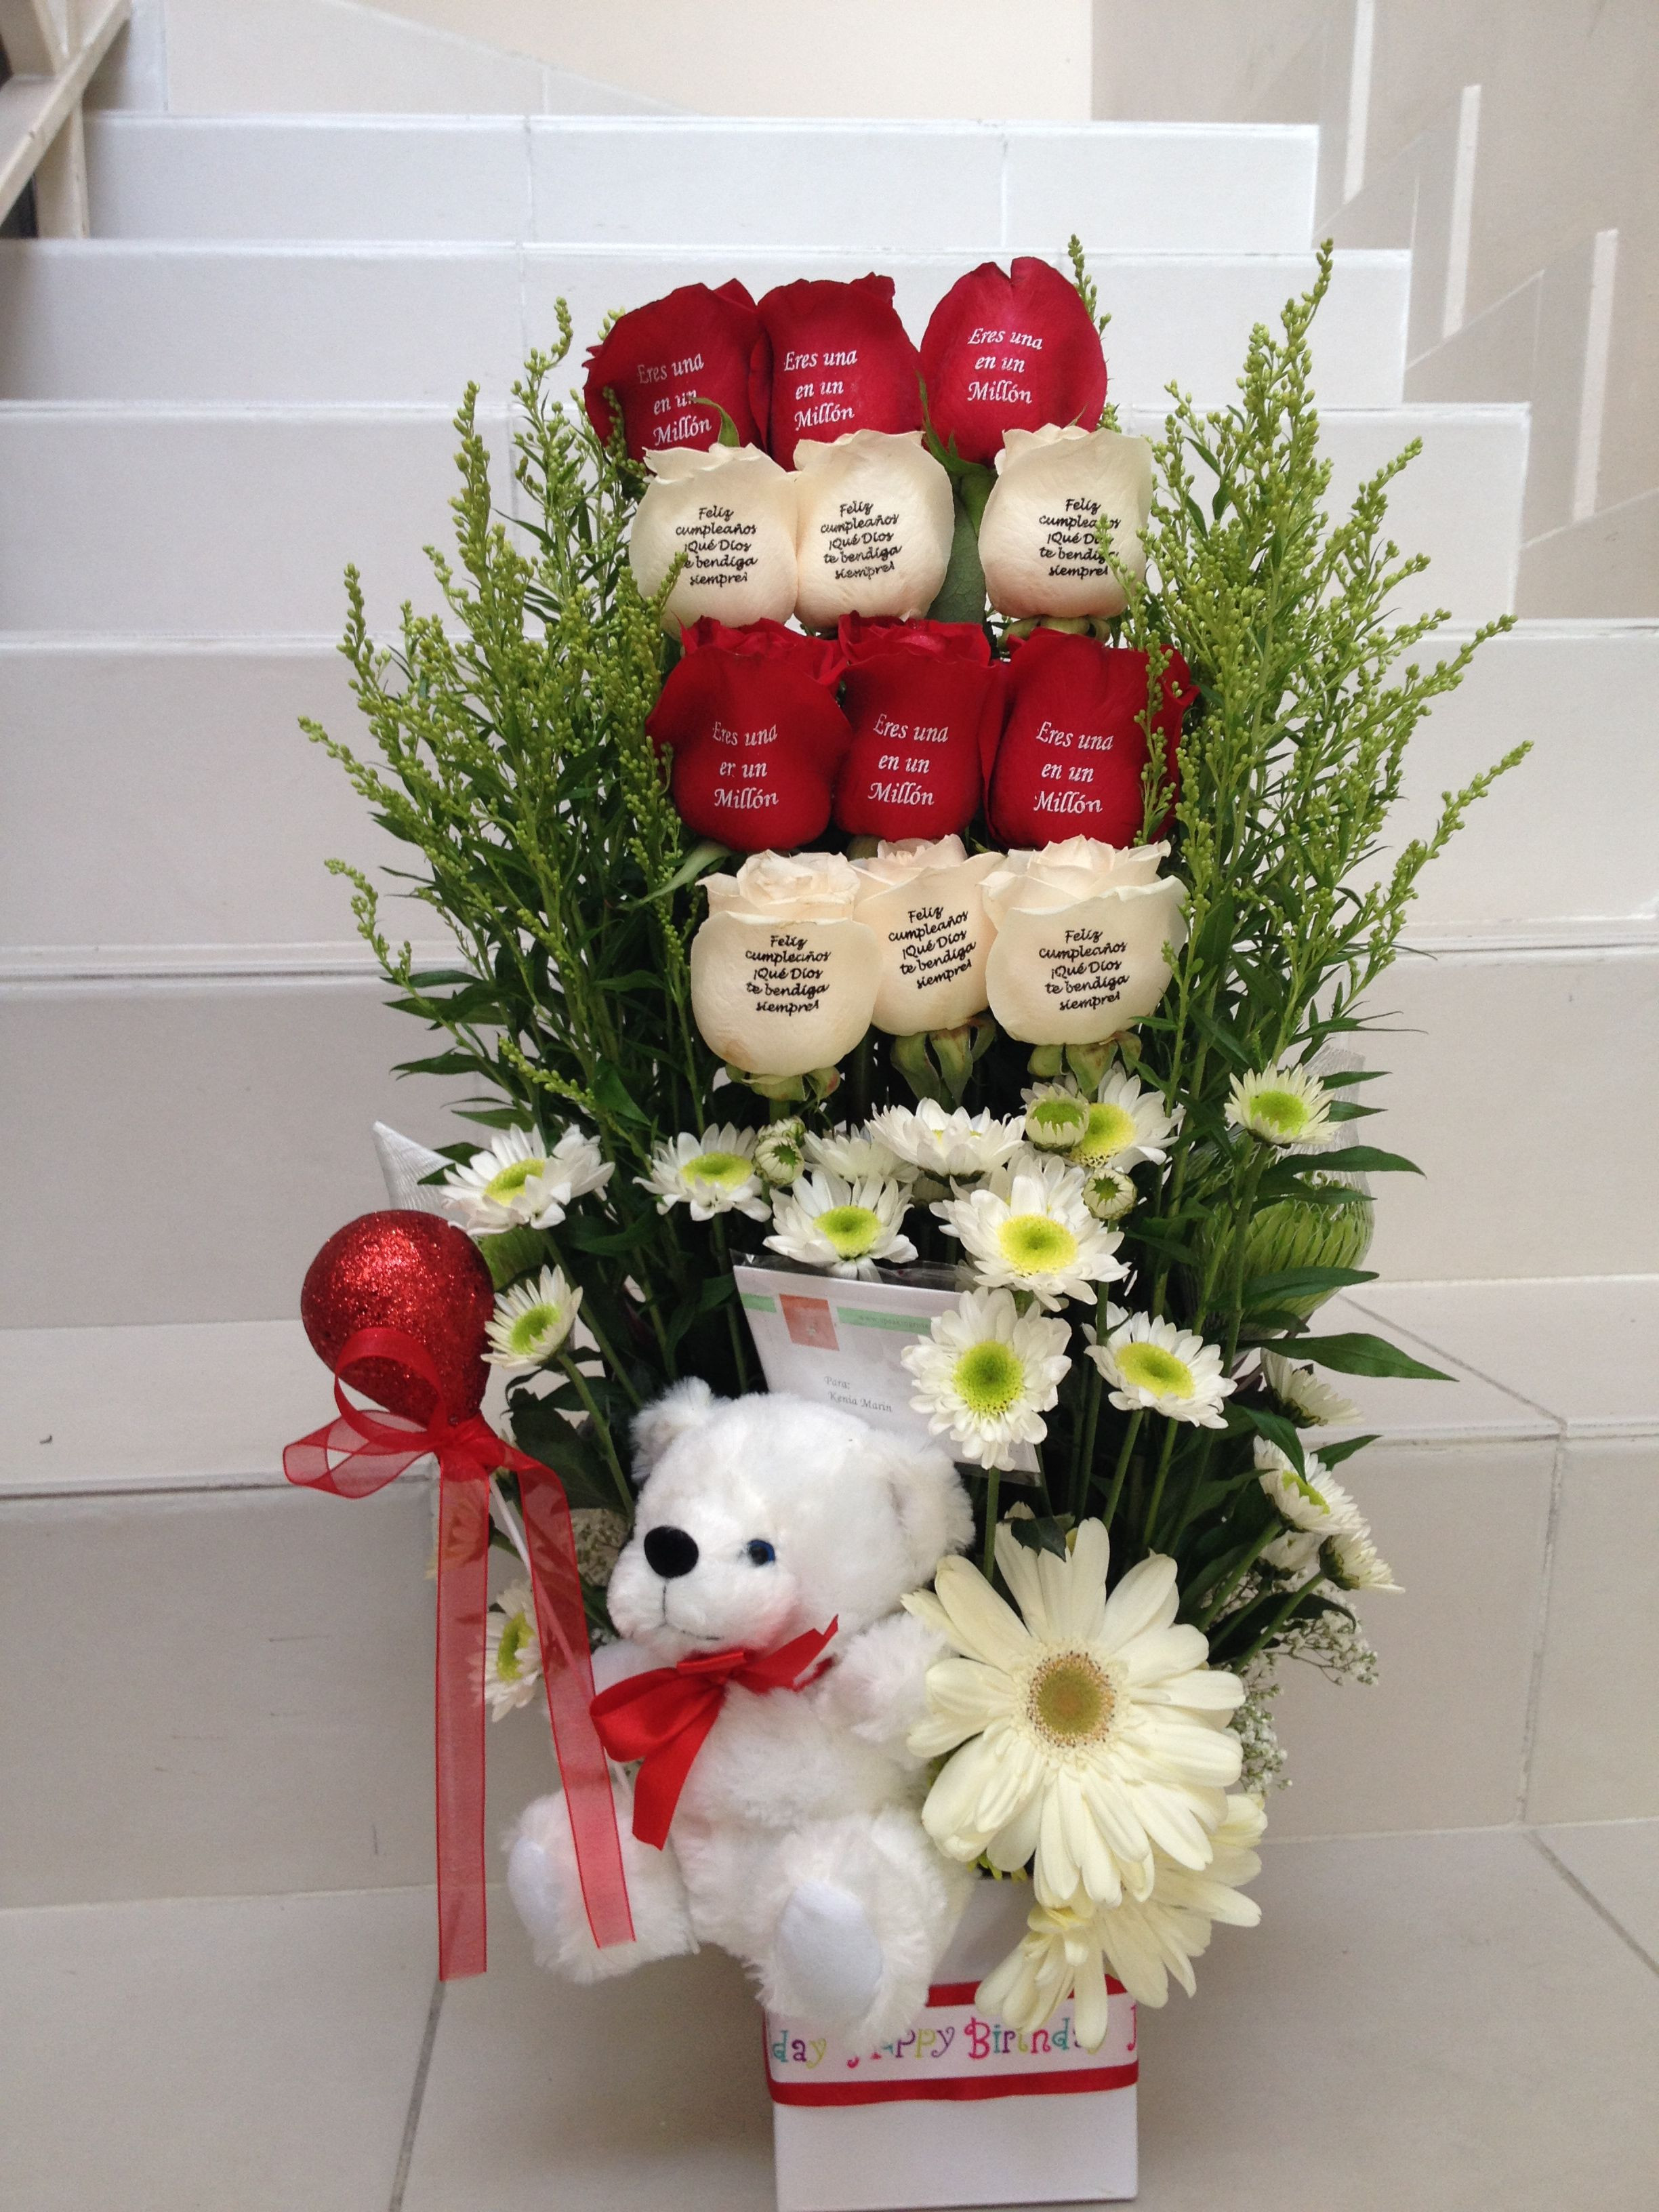 Flower arrangement with white and red embossed roses Arreglo floral con rosas blancas y rojas